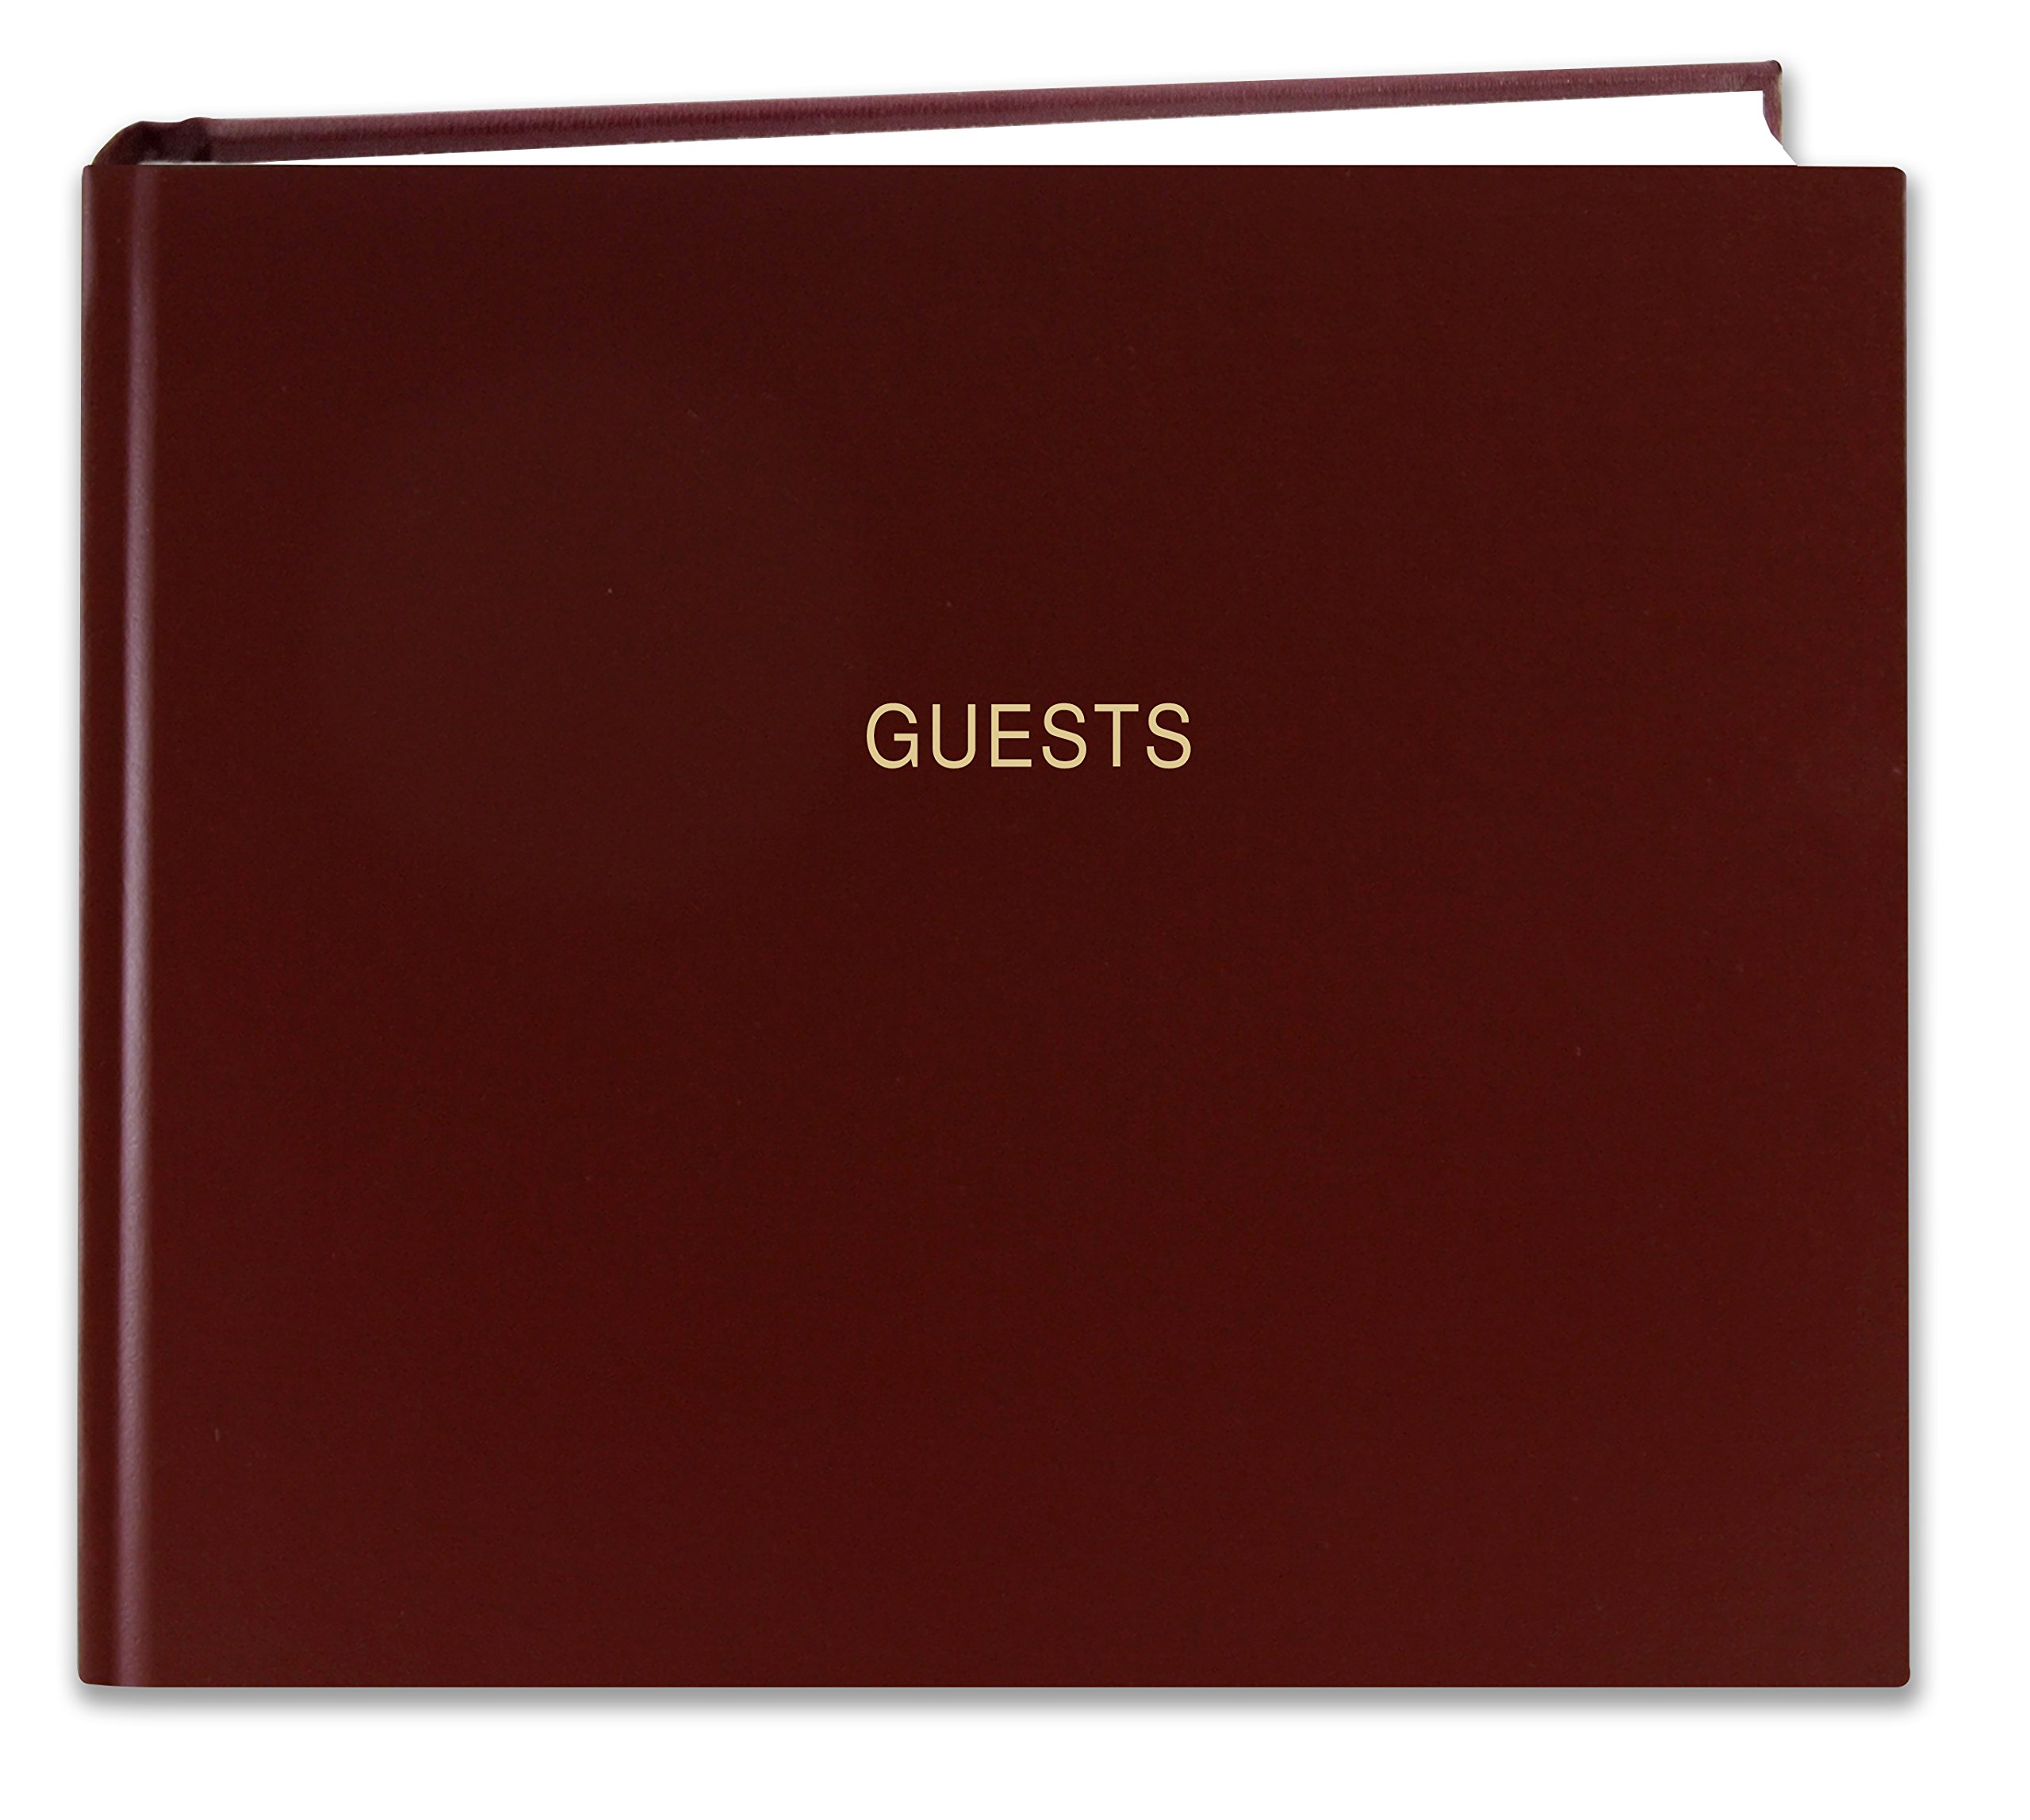 BookFactory Guest Book (120 Pages) / Guest Sign-in Book/Guest Registry/Guestbook - Burgundy Cover, Smyth Sewn Hardbound, 8 7/8'' x 7'' (LOG-120-GUEST-A-LMT25) by BookFactory